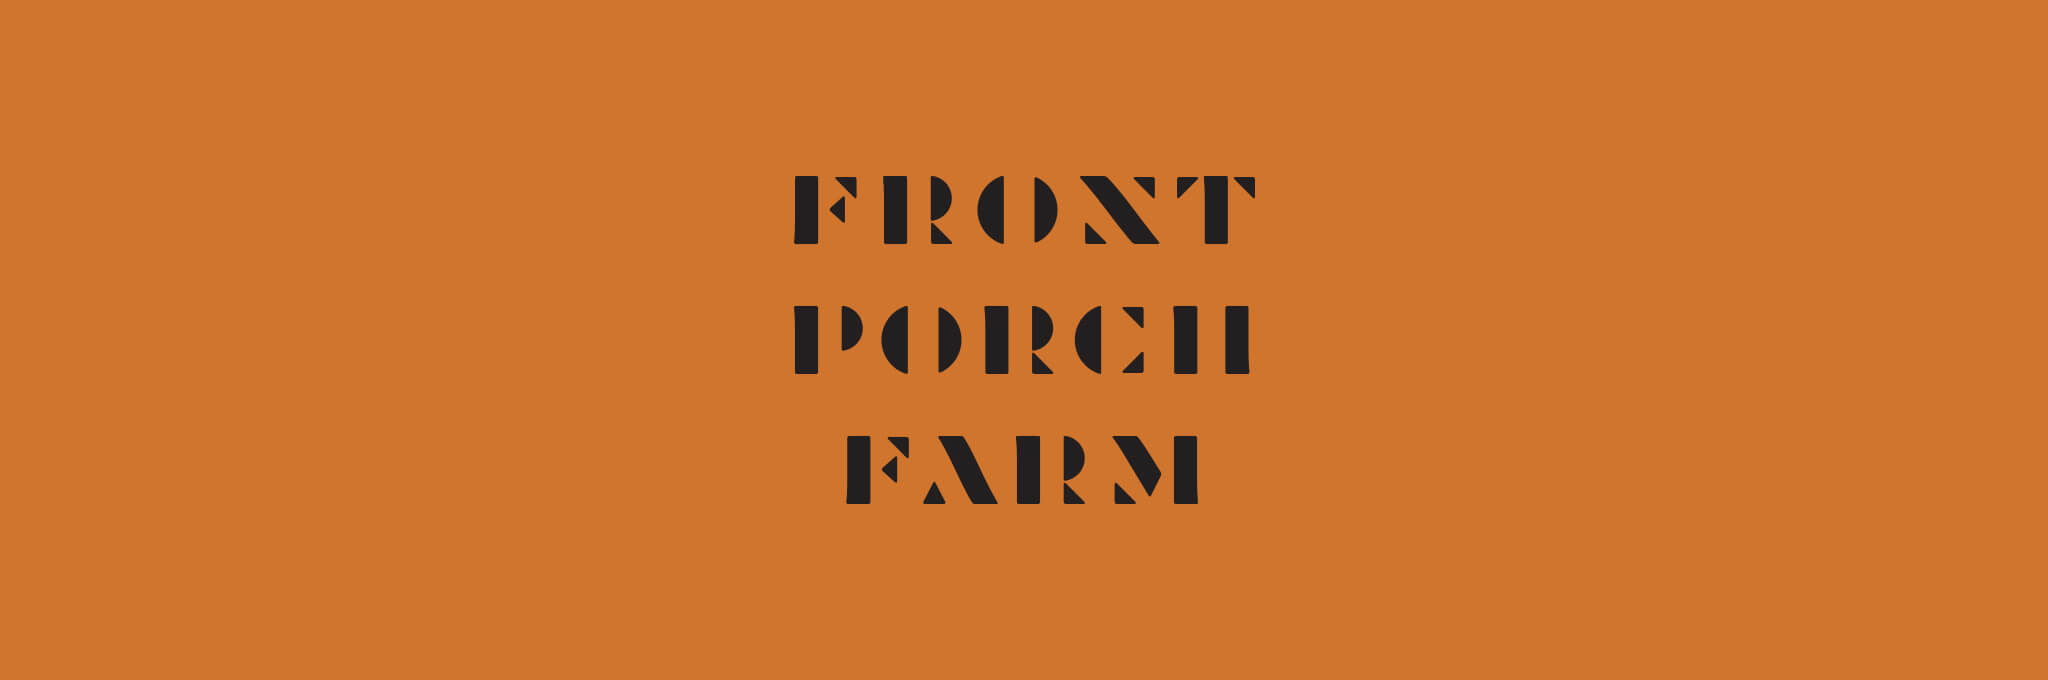 Black, stencil-style Front Port Farm logo on orange background